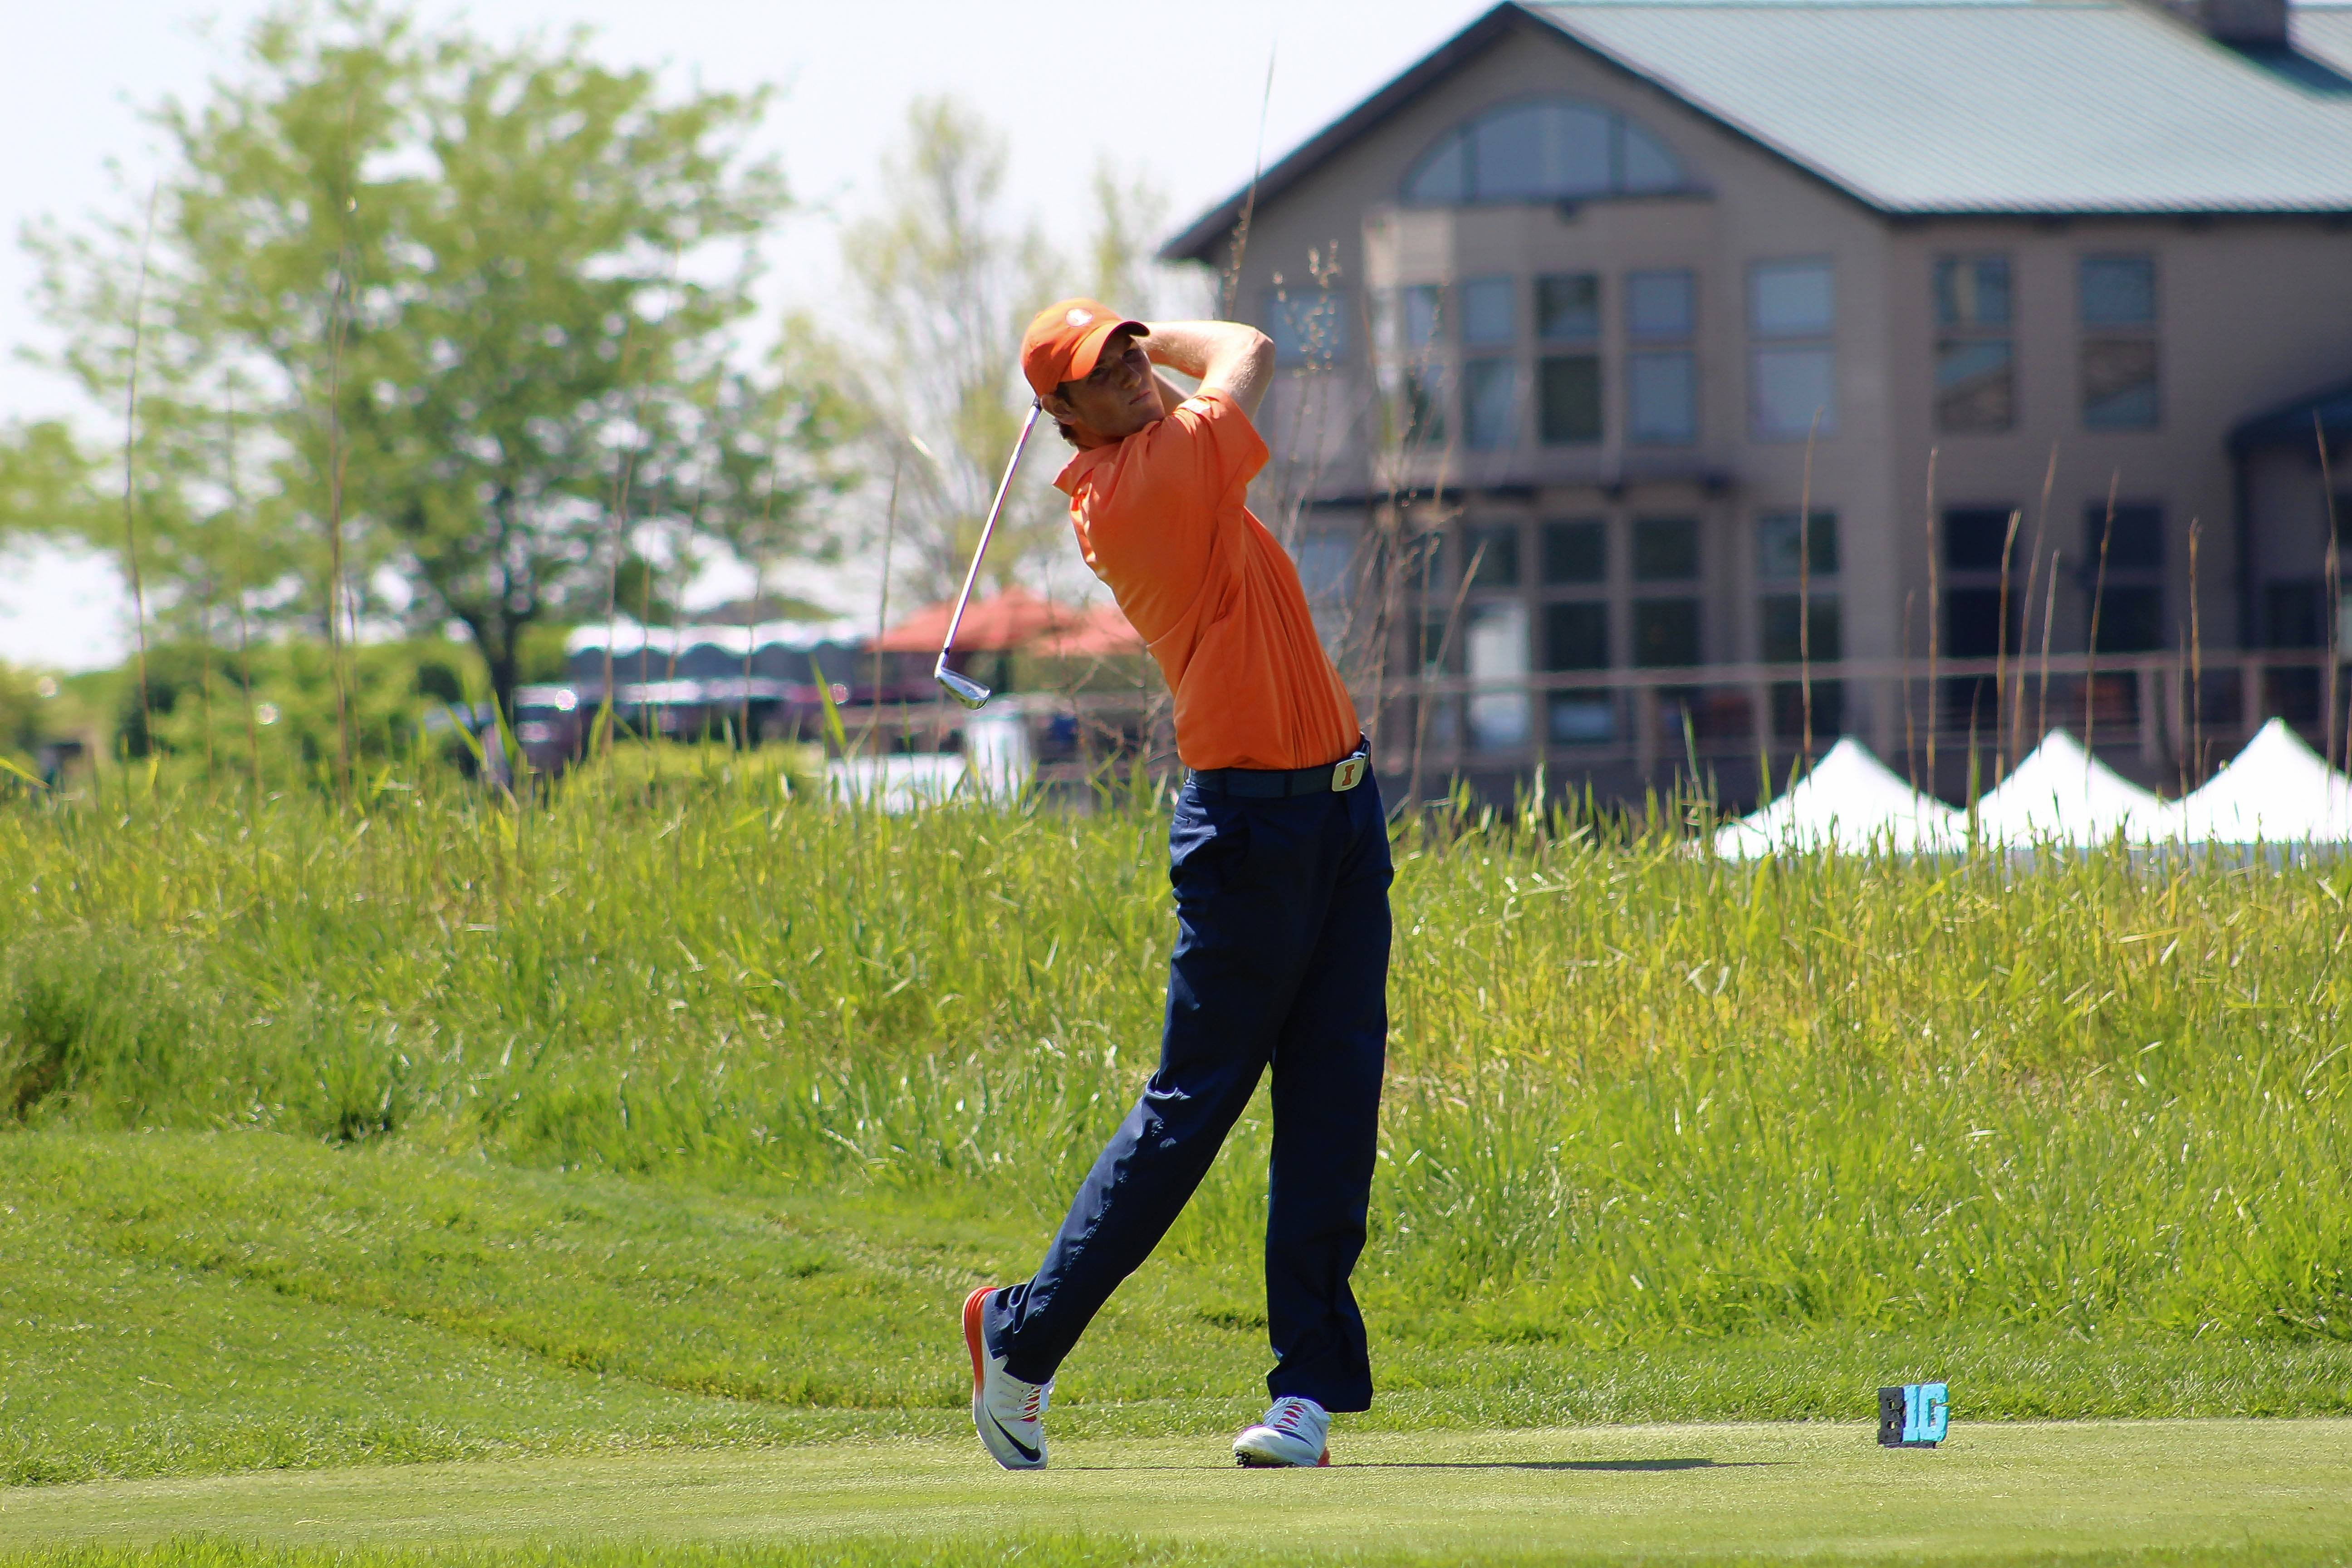 Charlie Danielson helped the Illini golf team finish second in the NCAA stroke-play tournament. Illinois was seeded No. 2 in the NCAA match play competition on Tuesday.